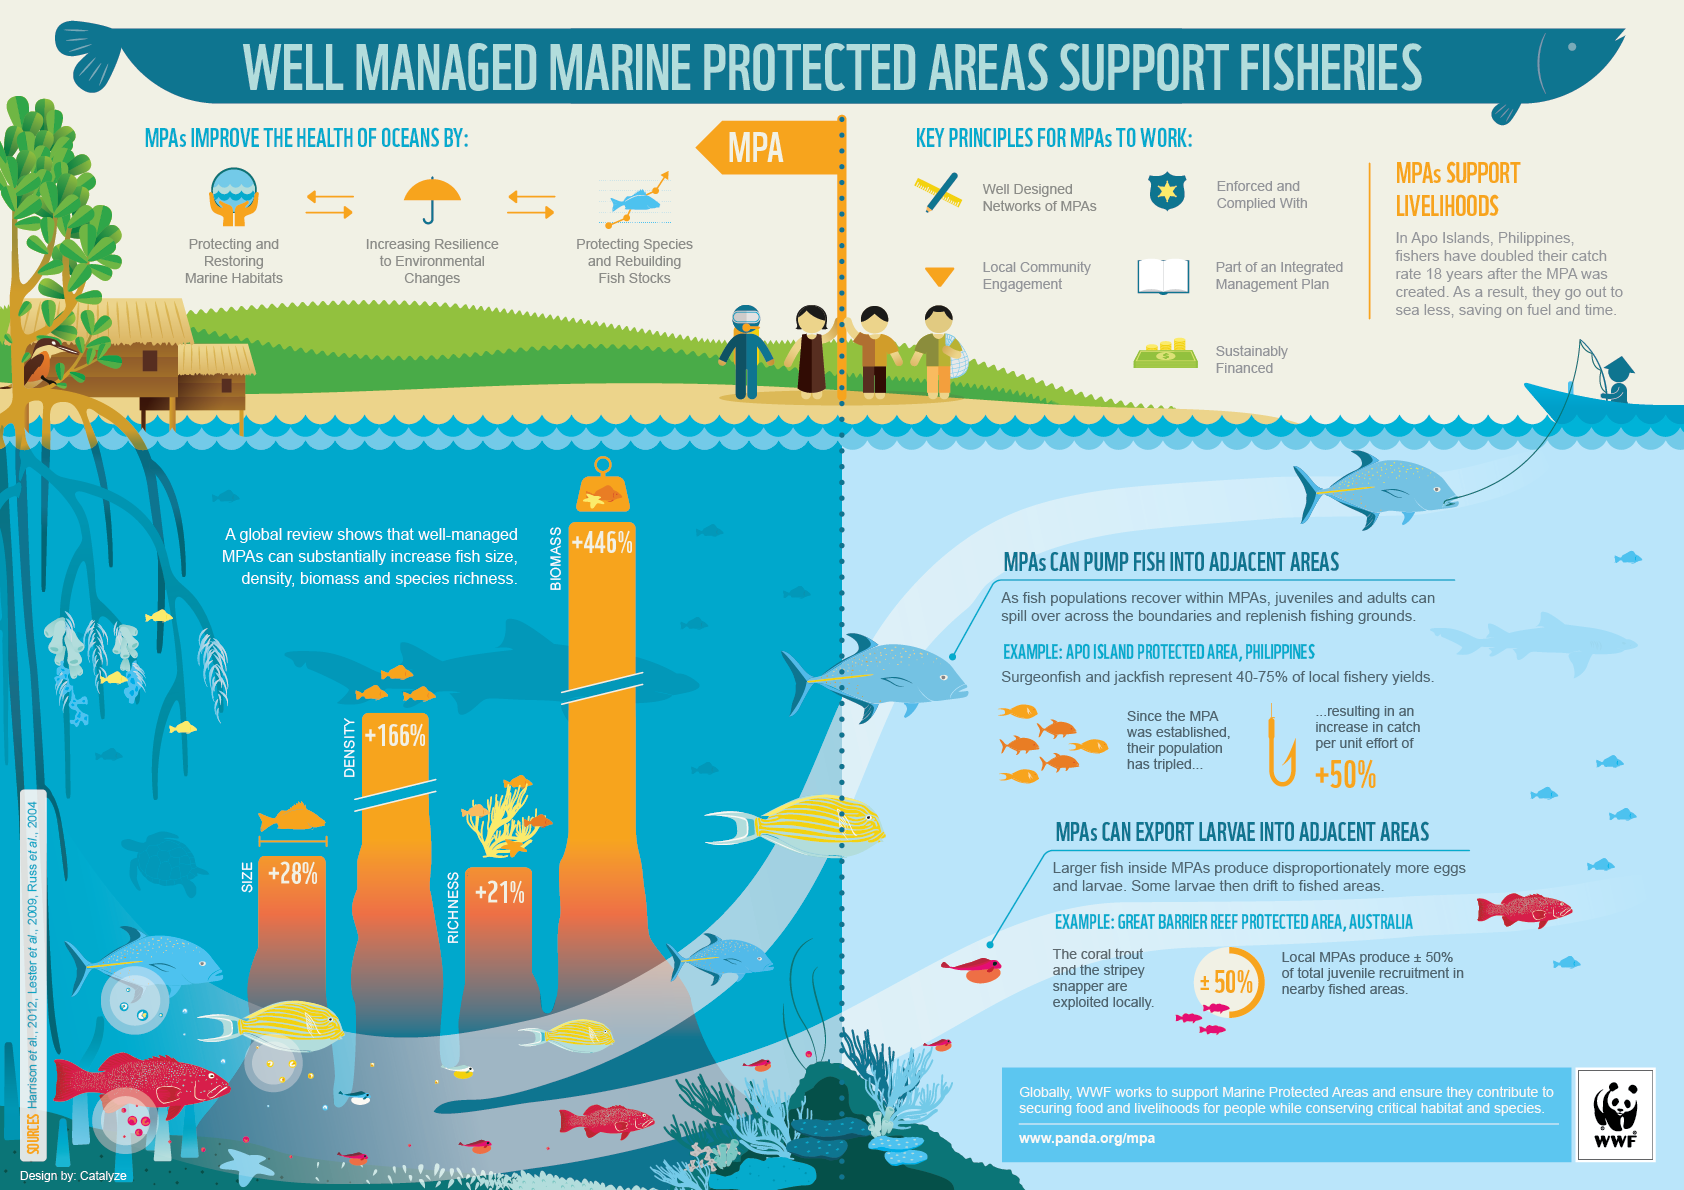 Welcome to the ProtectedSeas Marine Area Map!